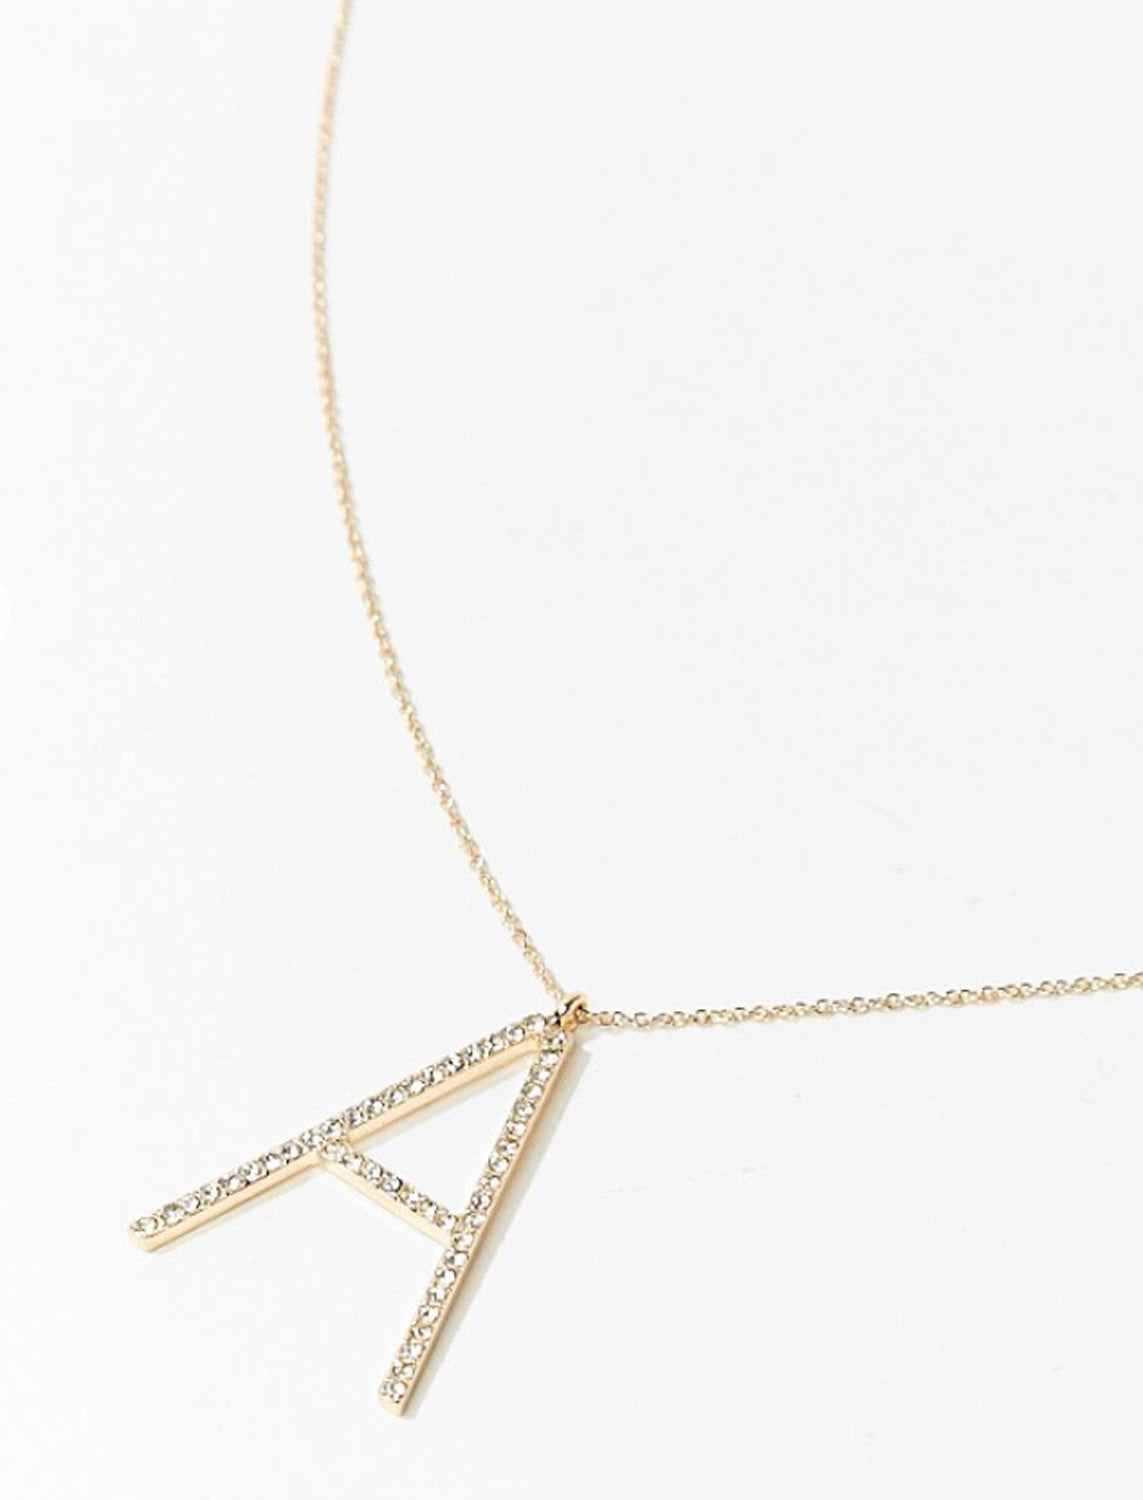 Rhinestone necklace shown with letter A